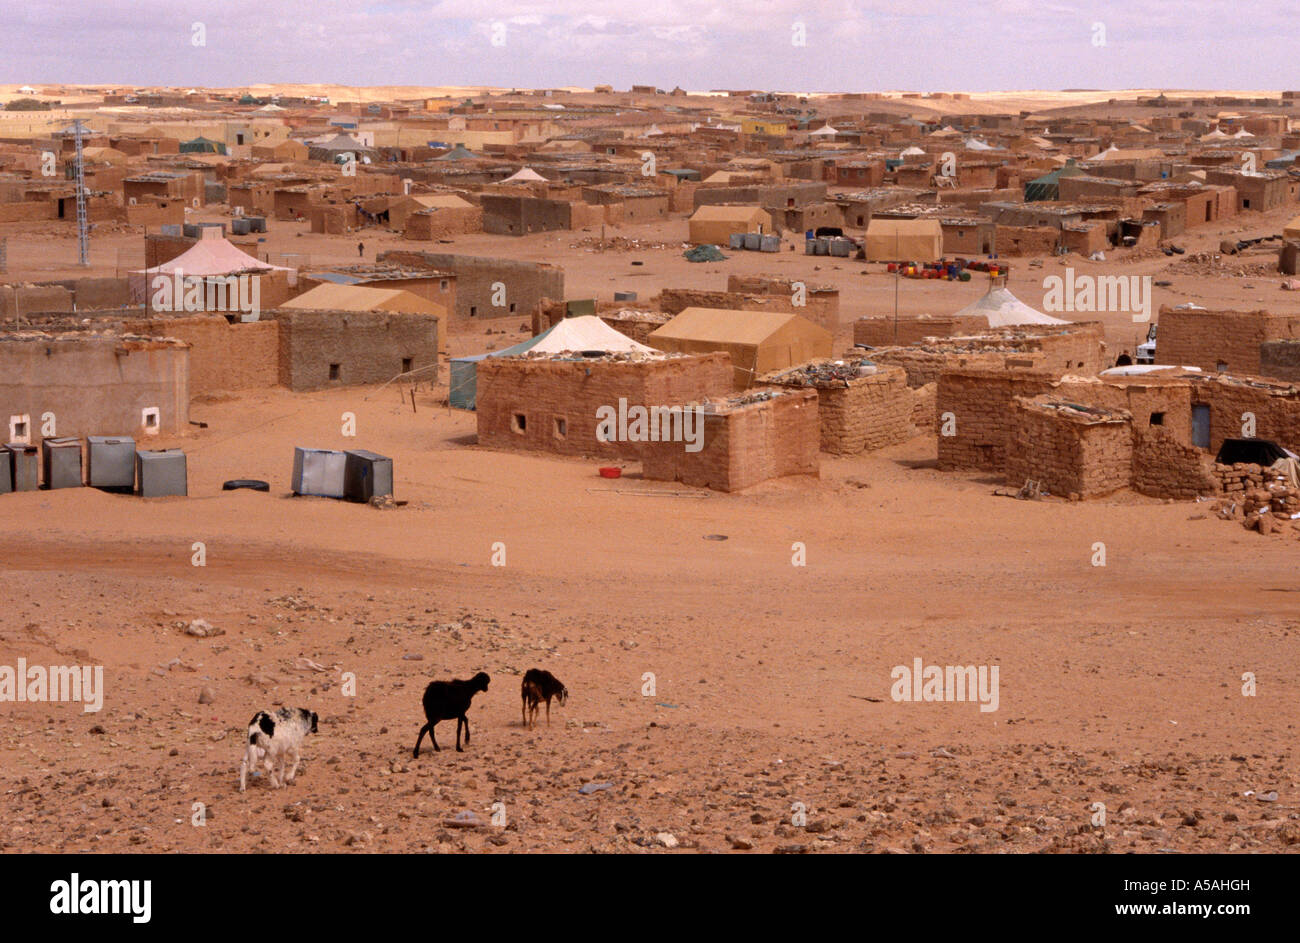 A refugee camp in Tindouf Western Algeria - Stock Image